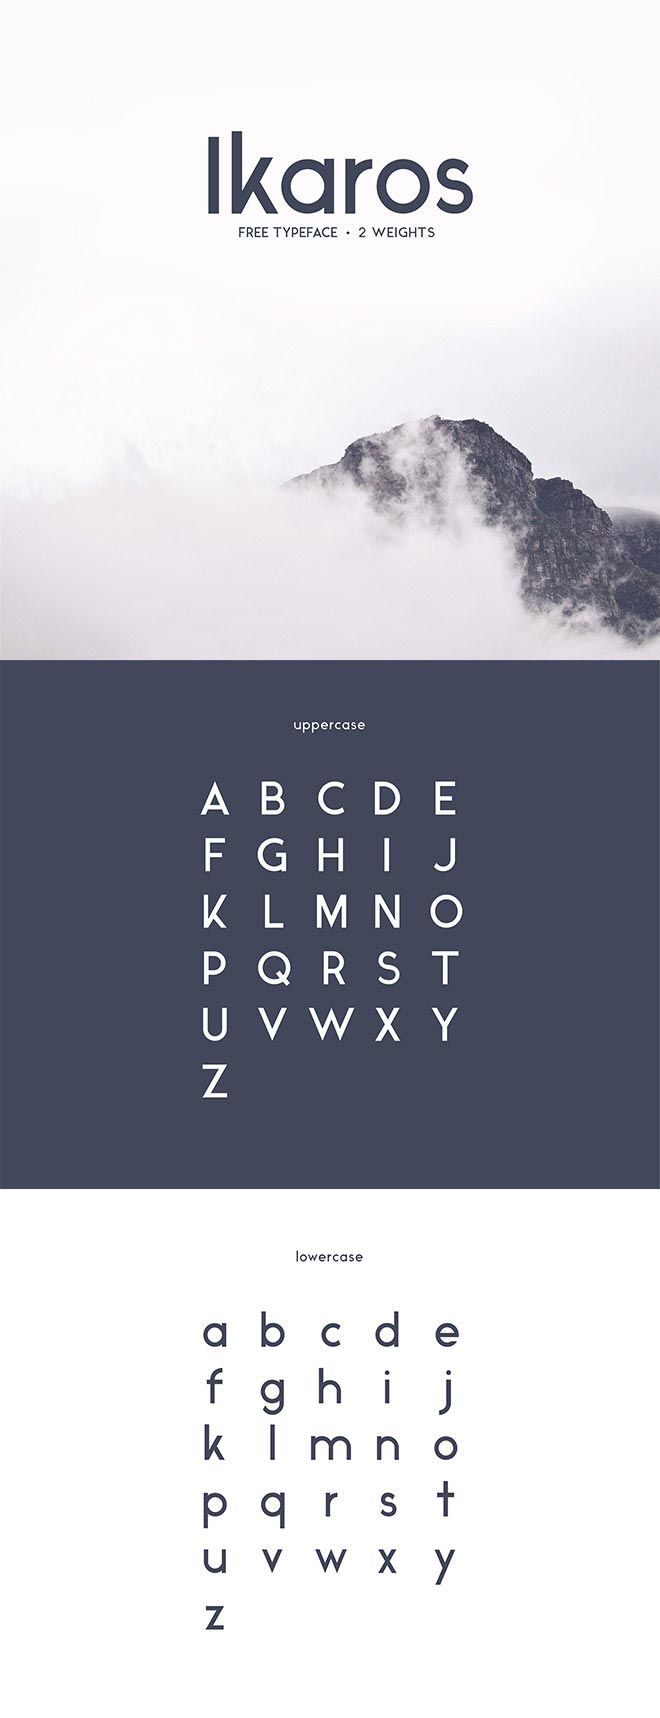 I want to use this font for my posters, because it is a very simple and minimalistic, but at the same time a strong and solid font.